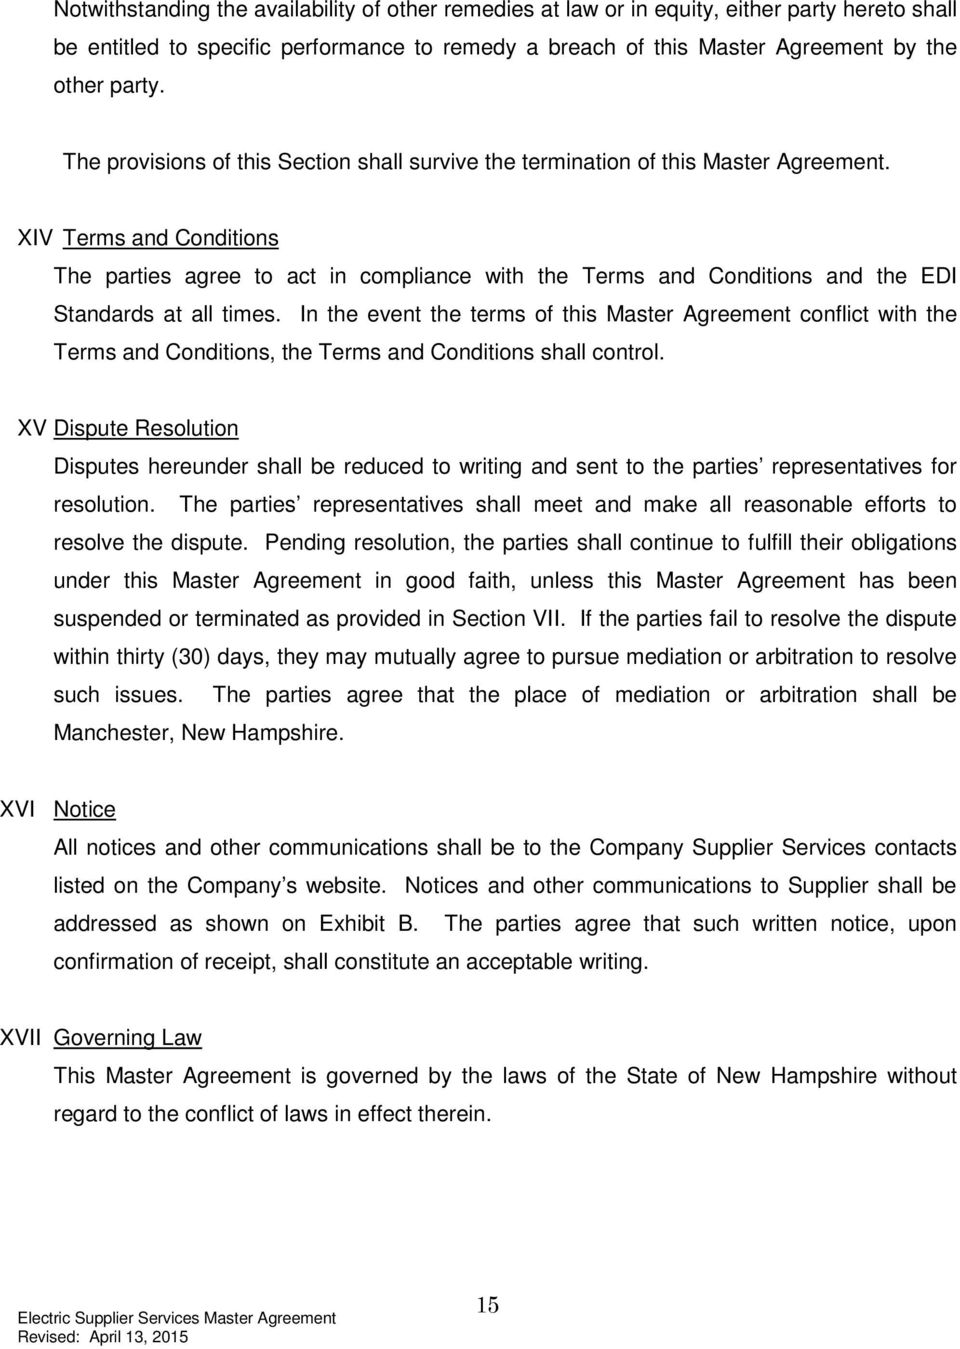 XIV Terms and Conditions The parties agree to act in compliance with the Terms and Conditions and the EDI Standards at all times.